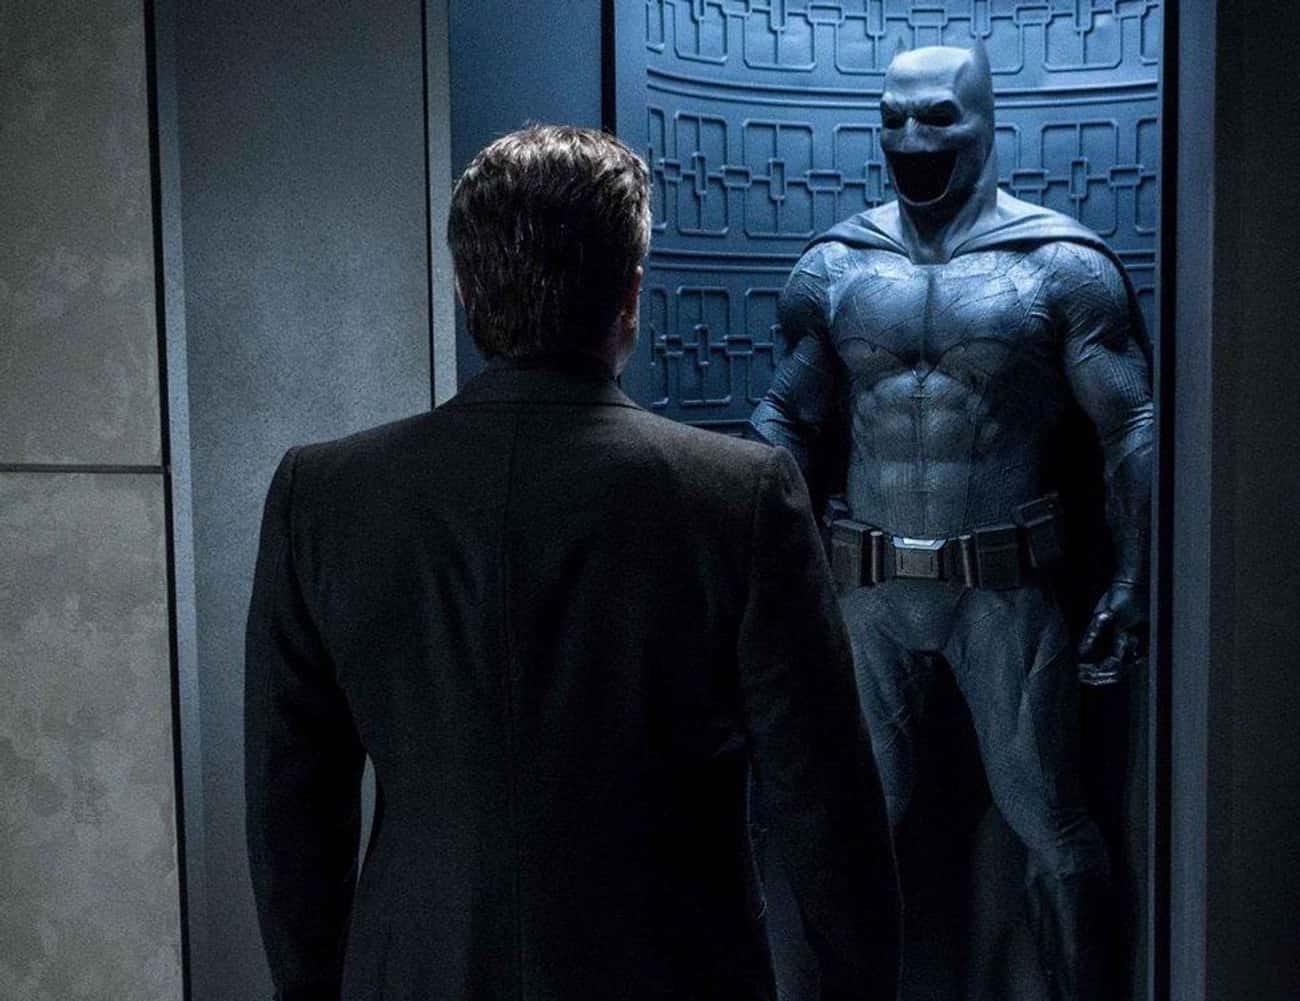 The Batsuit Was Simplified And Beaten Up To Emphasize Batman's Brawniness